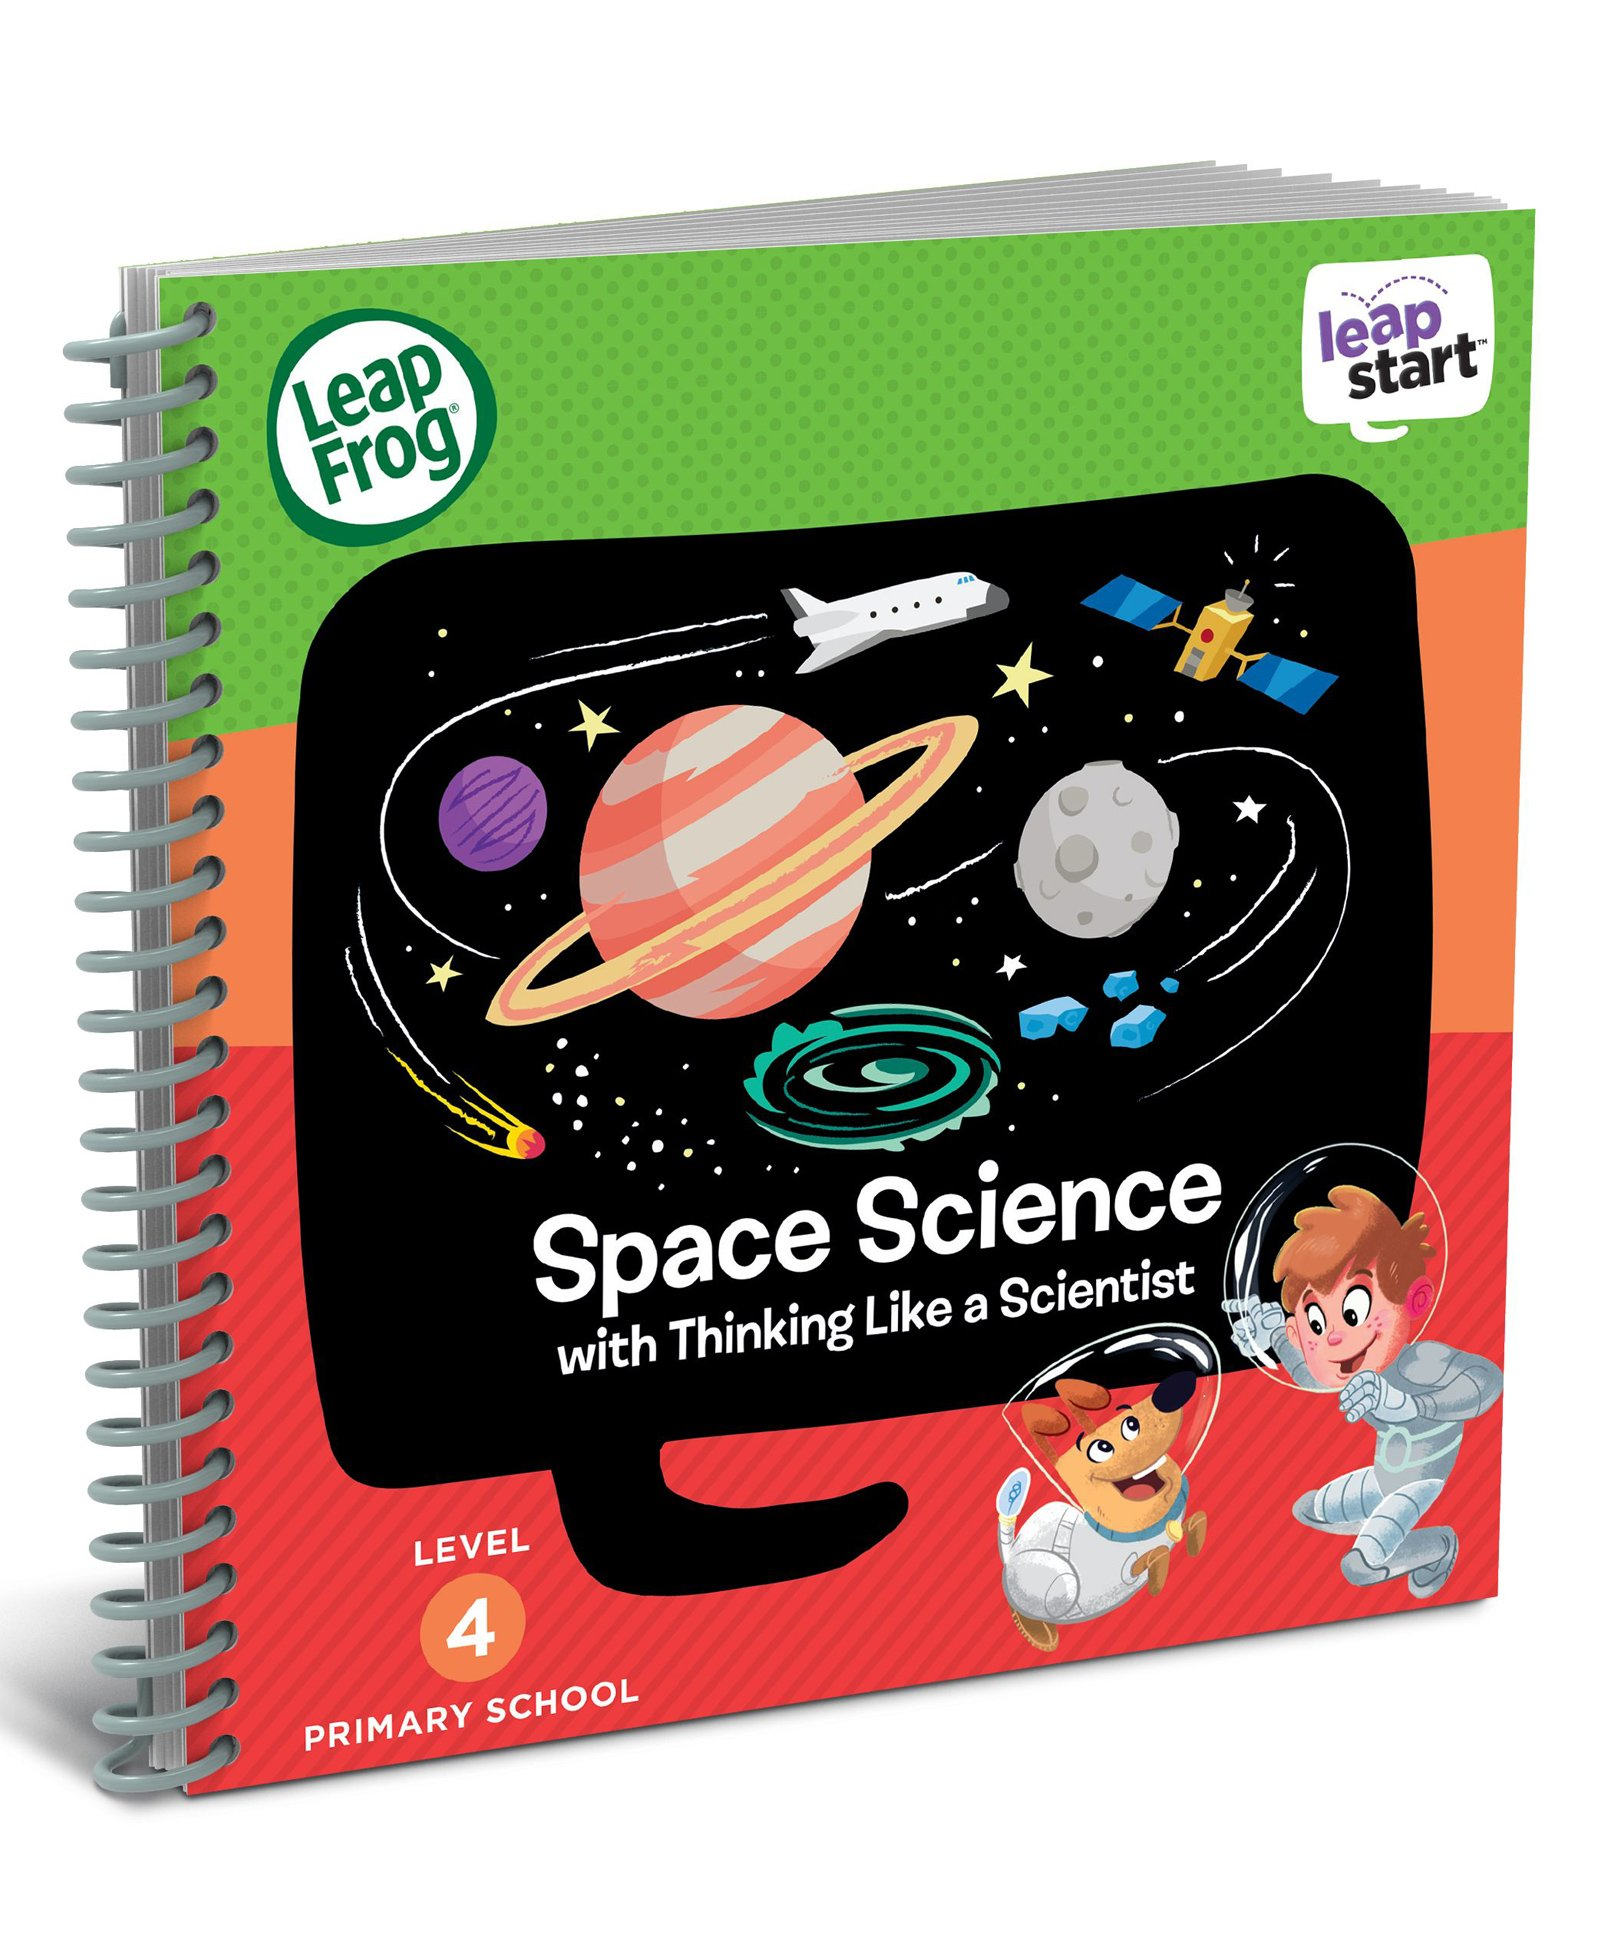 Leap Frog Space Science With Thinking Like A Scientist